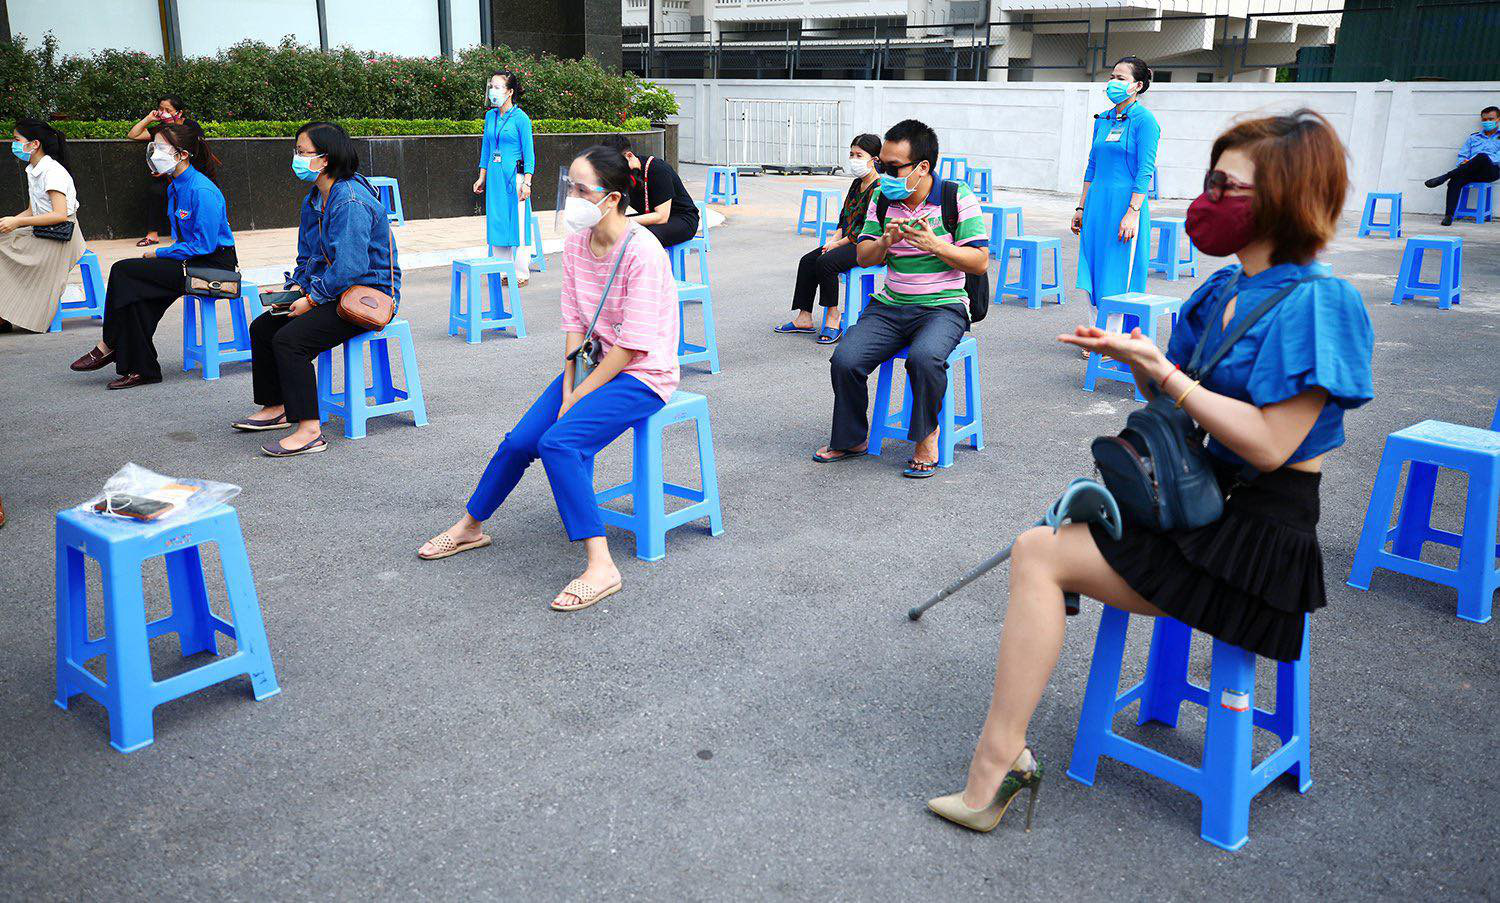 Disabled workers wait for a COVID-19 vaccination session in Hanoi, July 29, 2021. Photo: Ministry of Planning and Investment